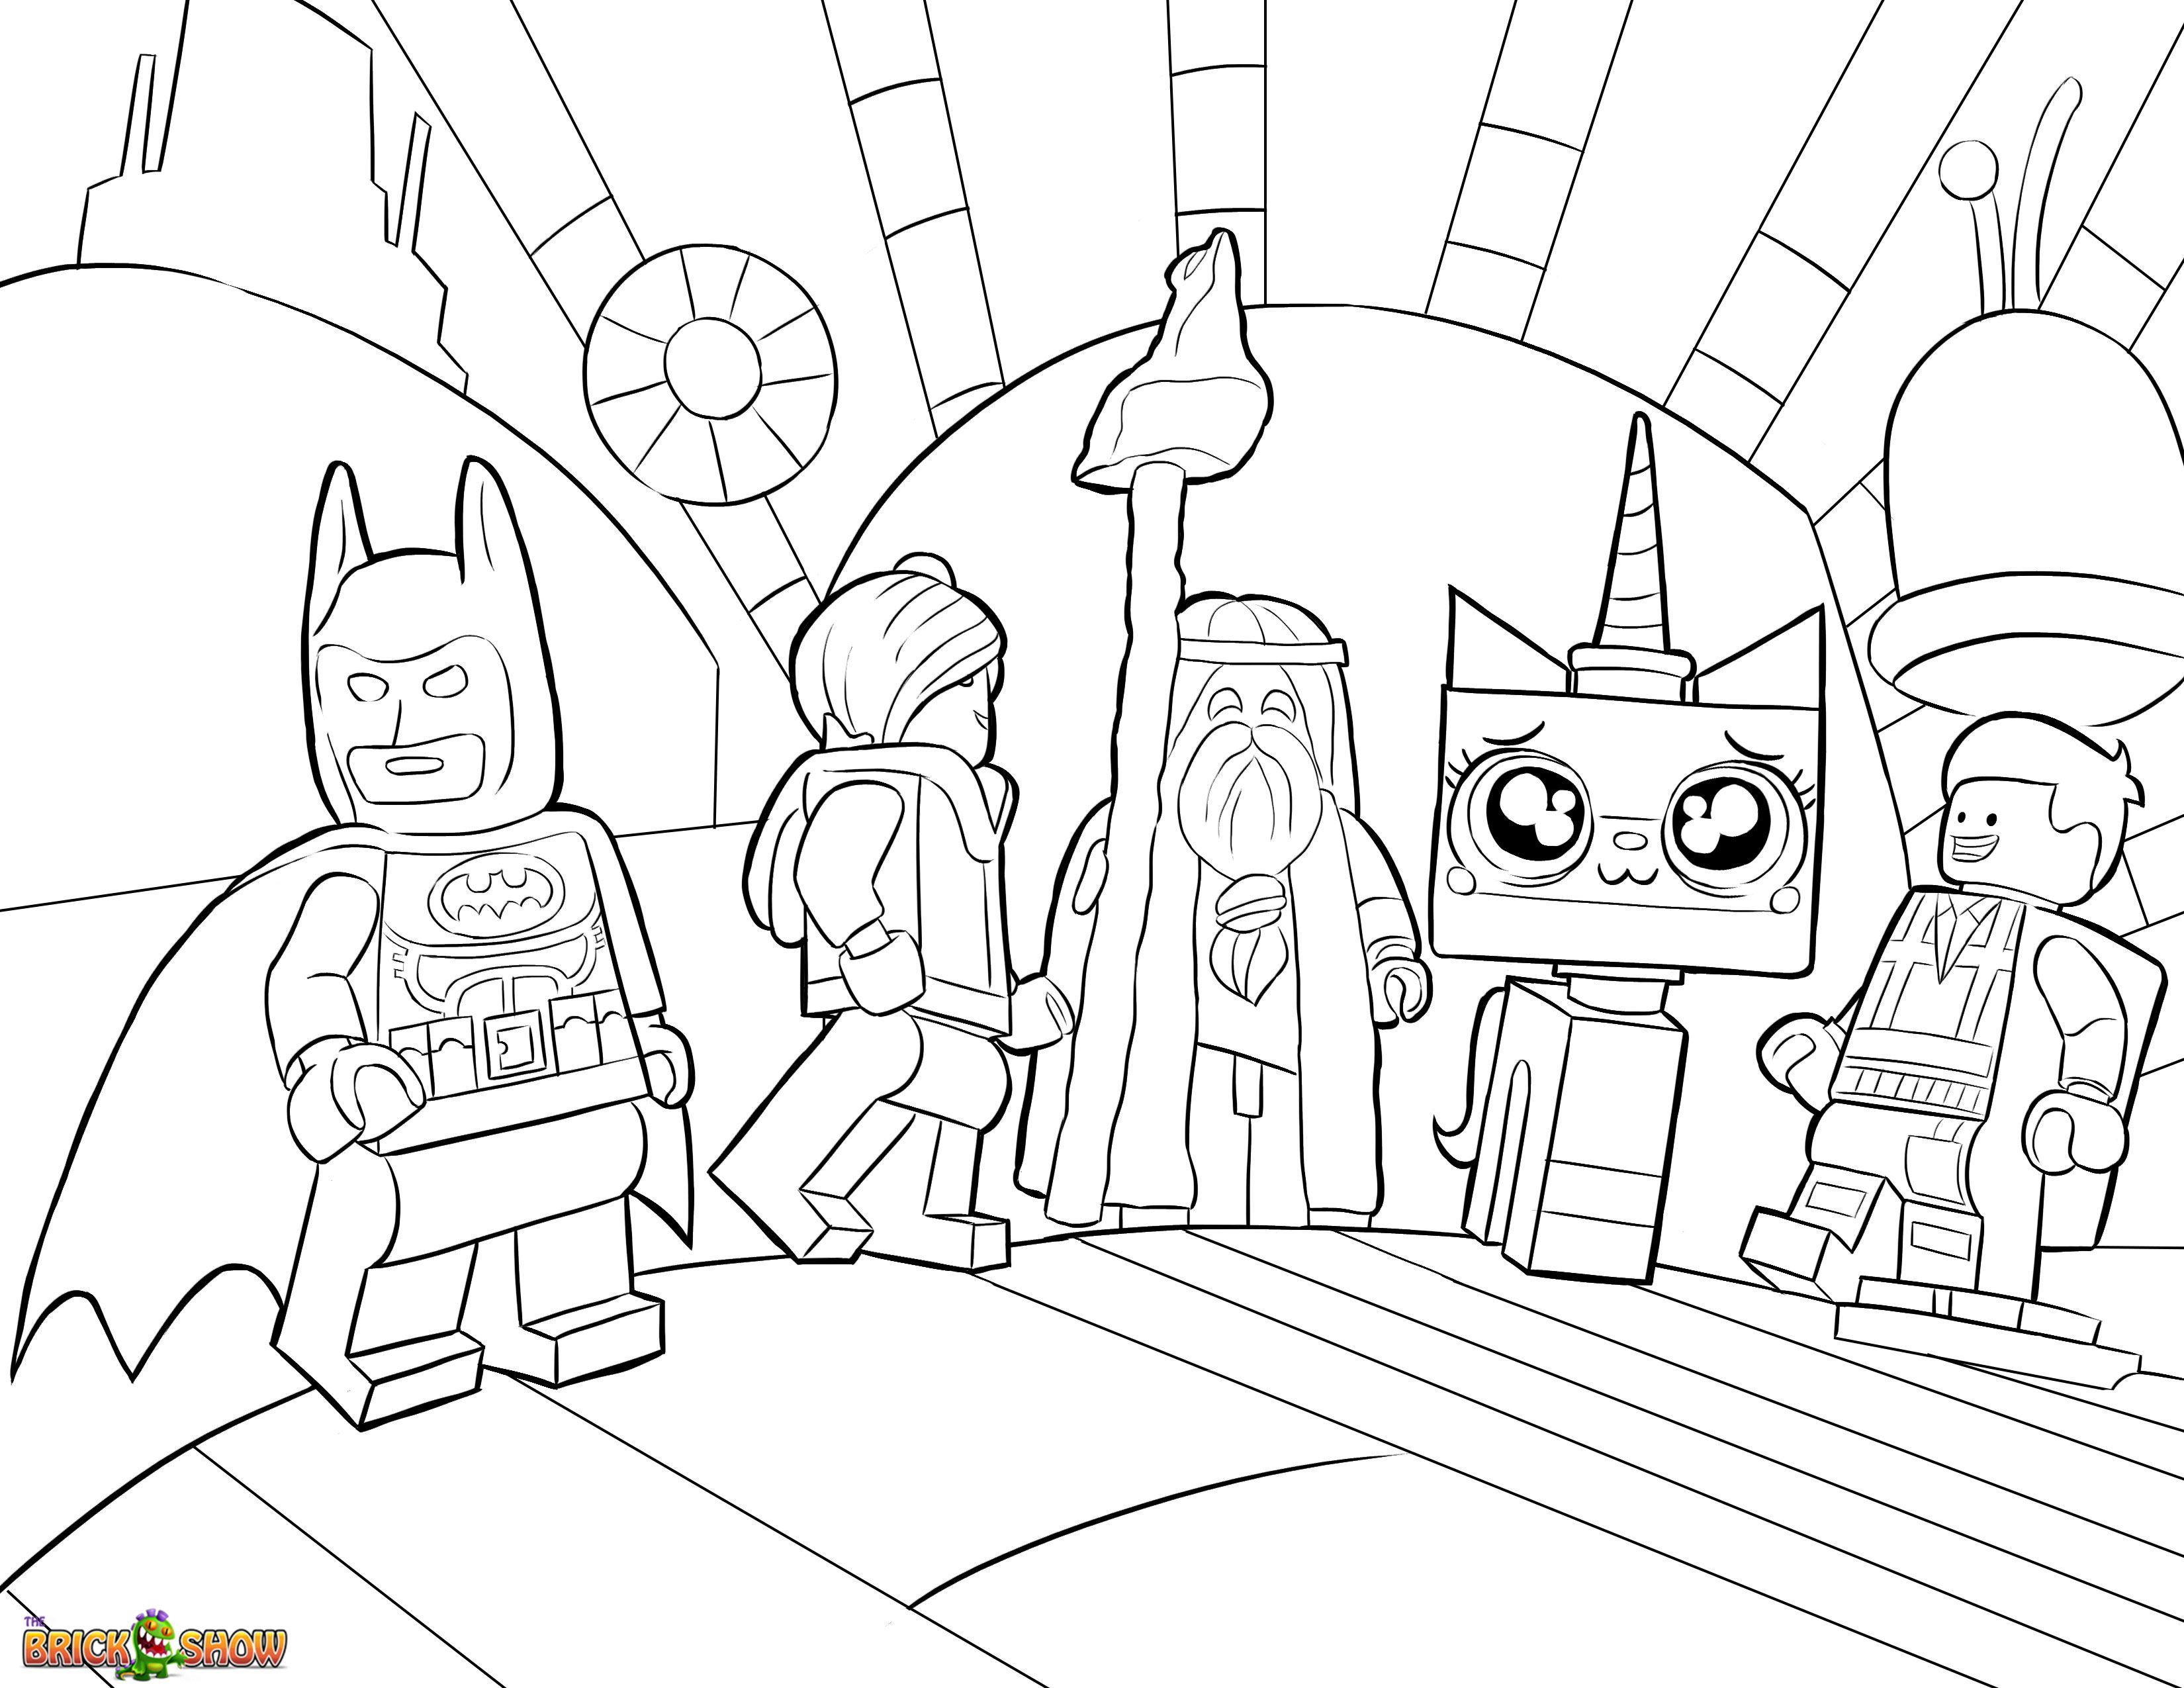 Princess unikitty coloring pages - Princess Unikitty Coloring Pages 2